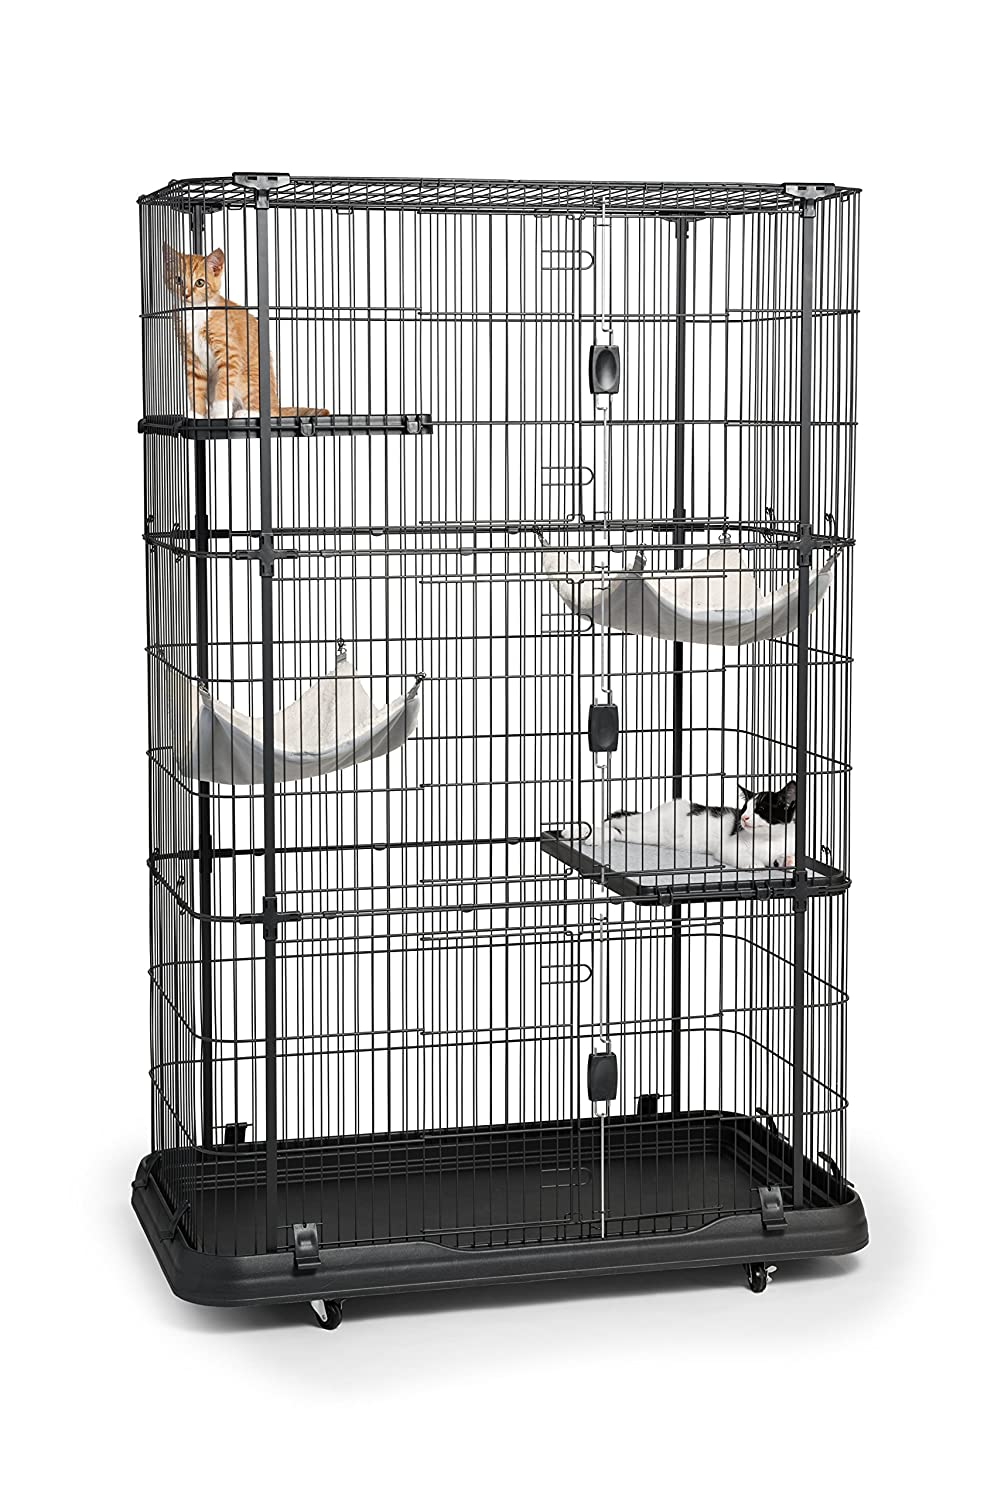 Top 6 Best Outdoor Cat Run Enclosure Reviews in 2021 2